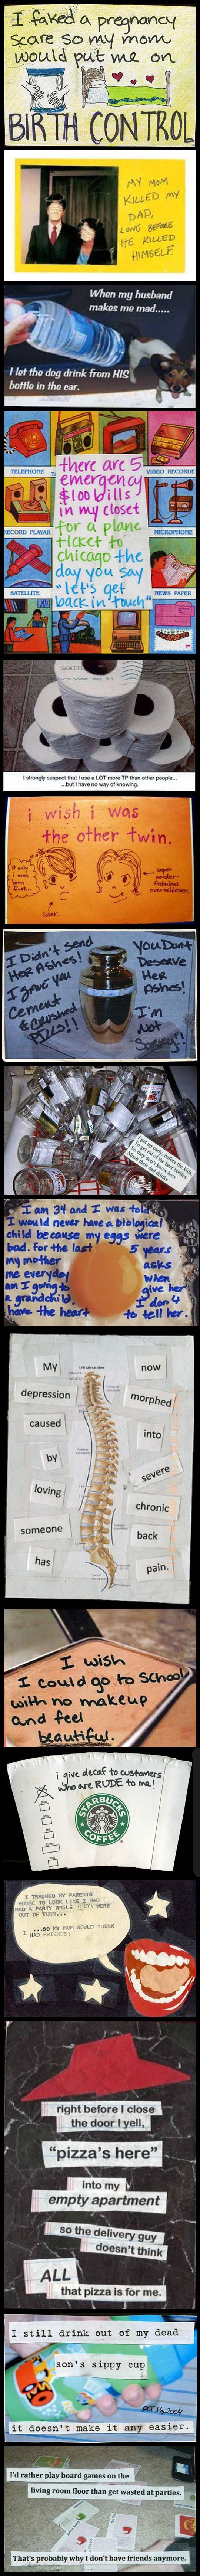 Before Confession Bear, It Was All About Post Secret.